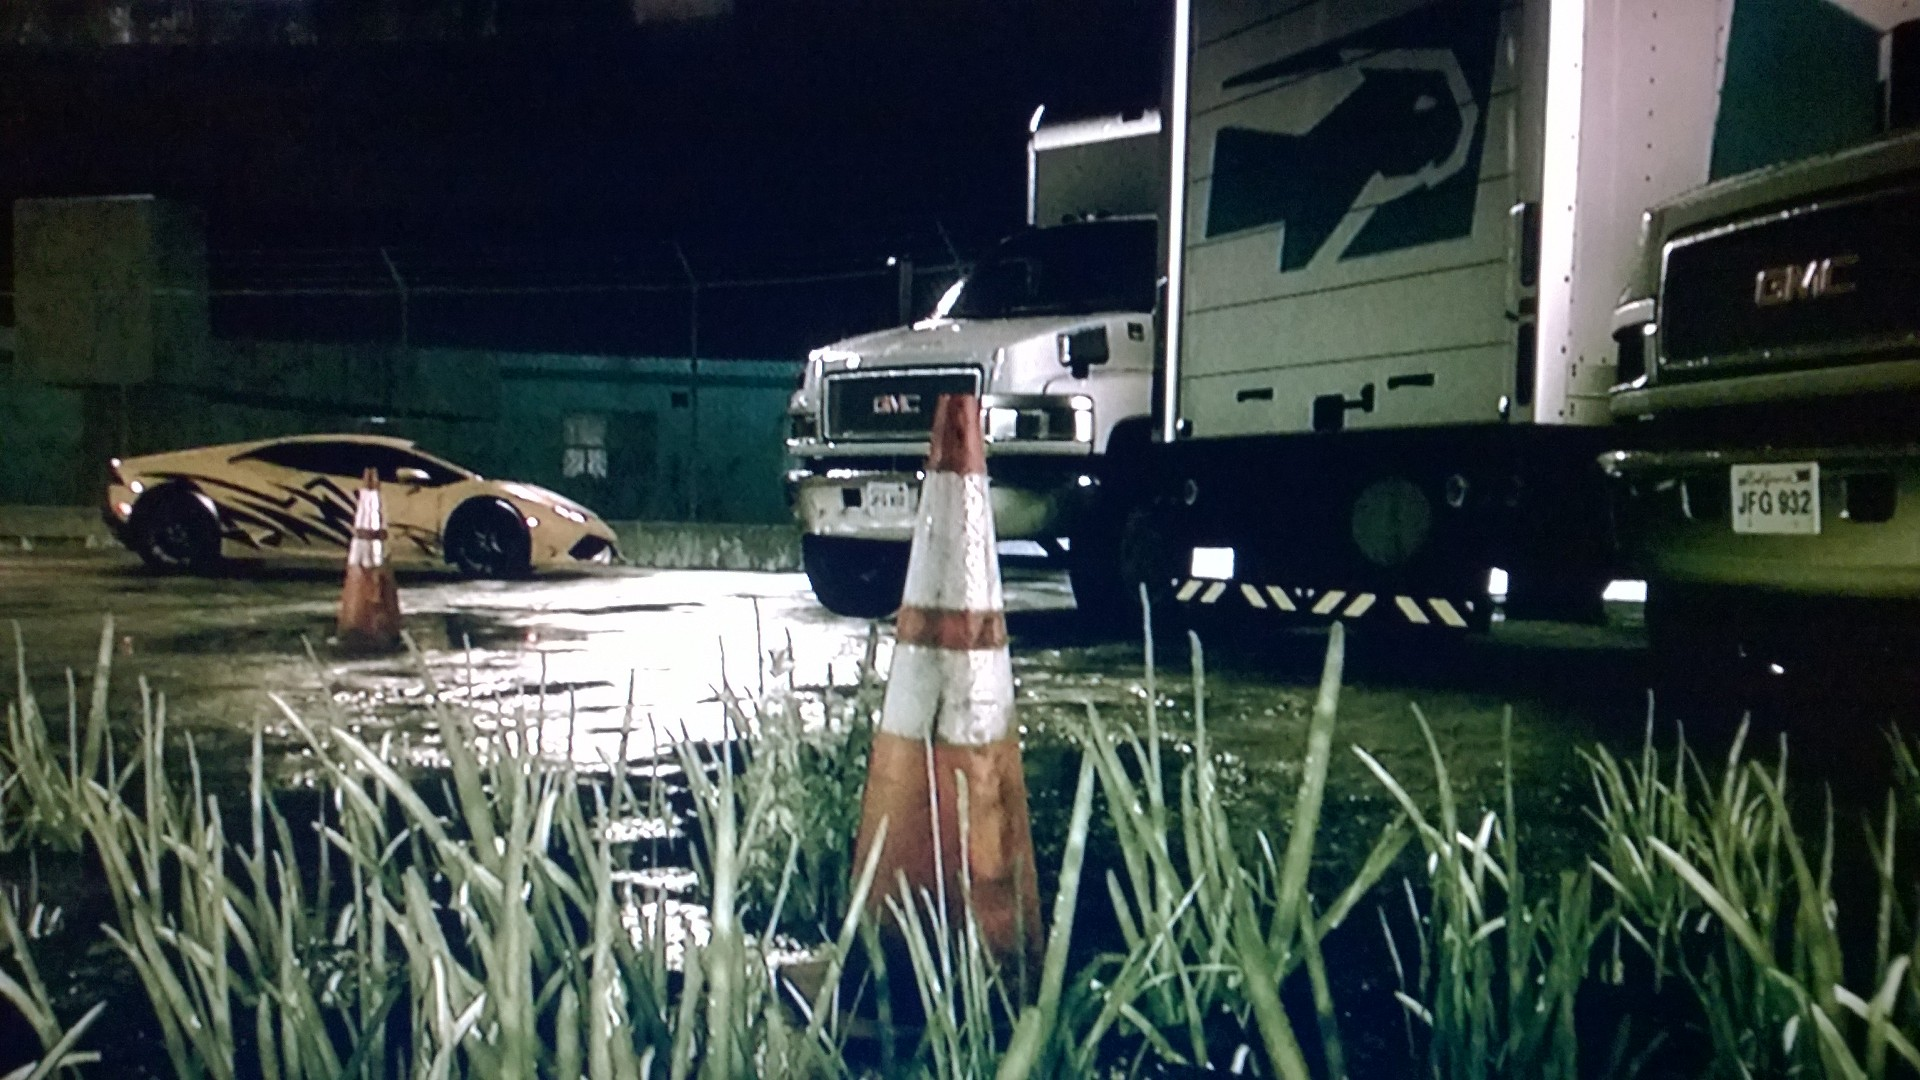 NFS 2015 - pause camion